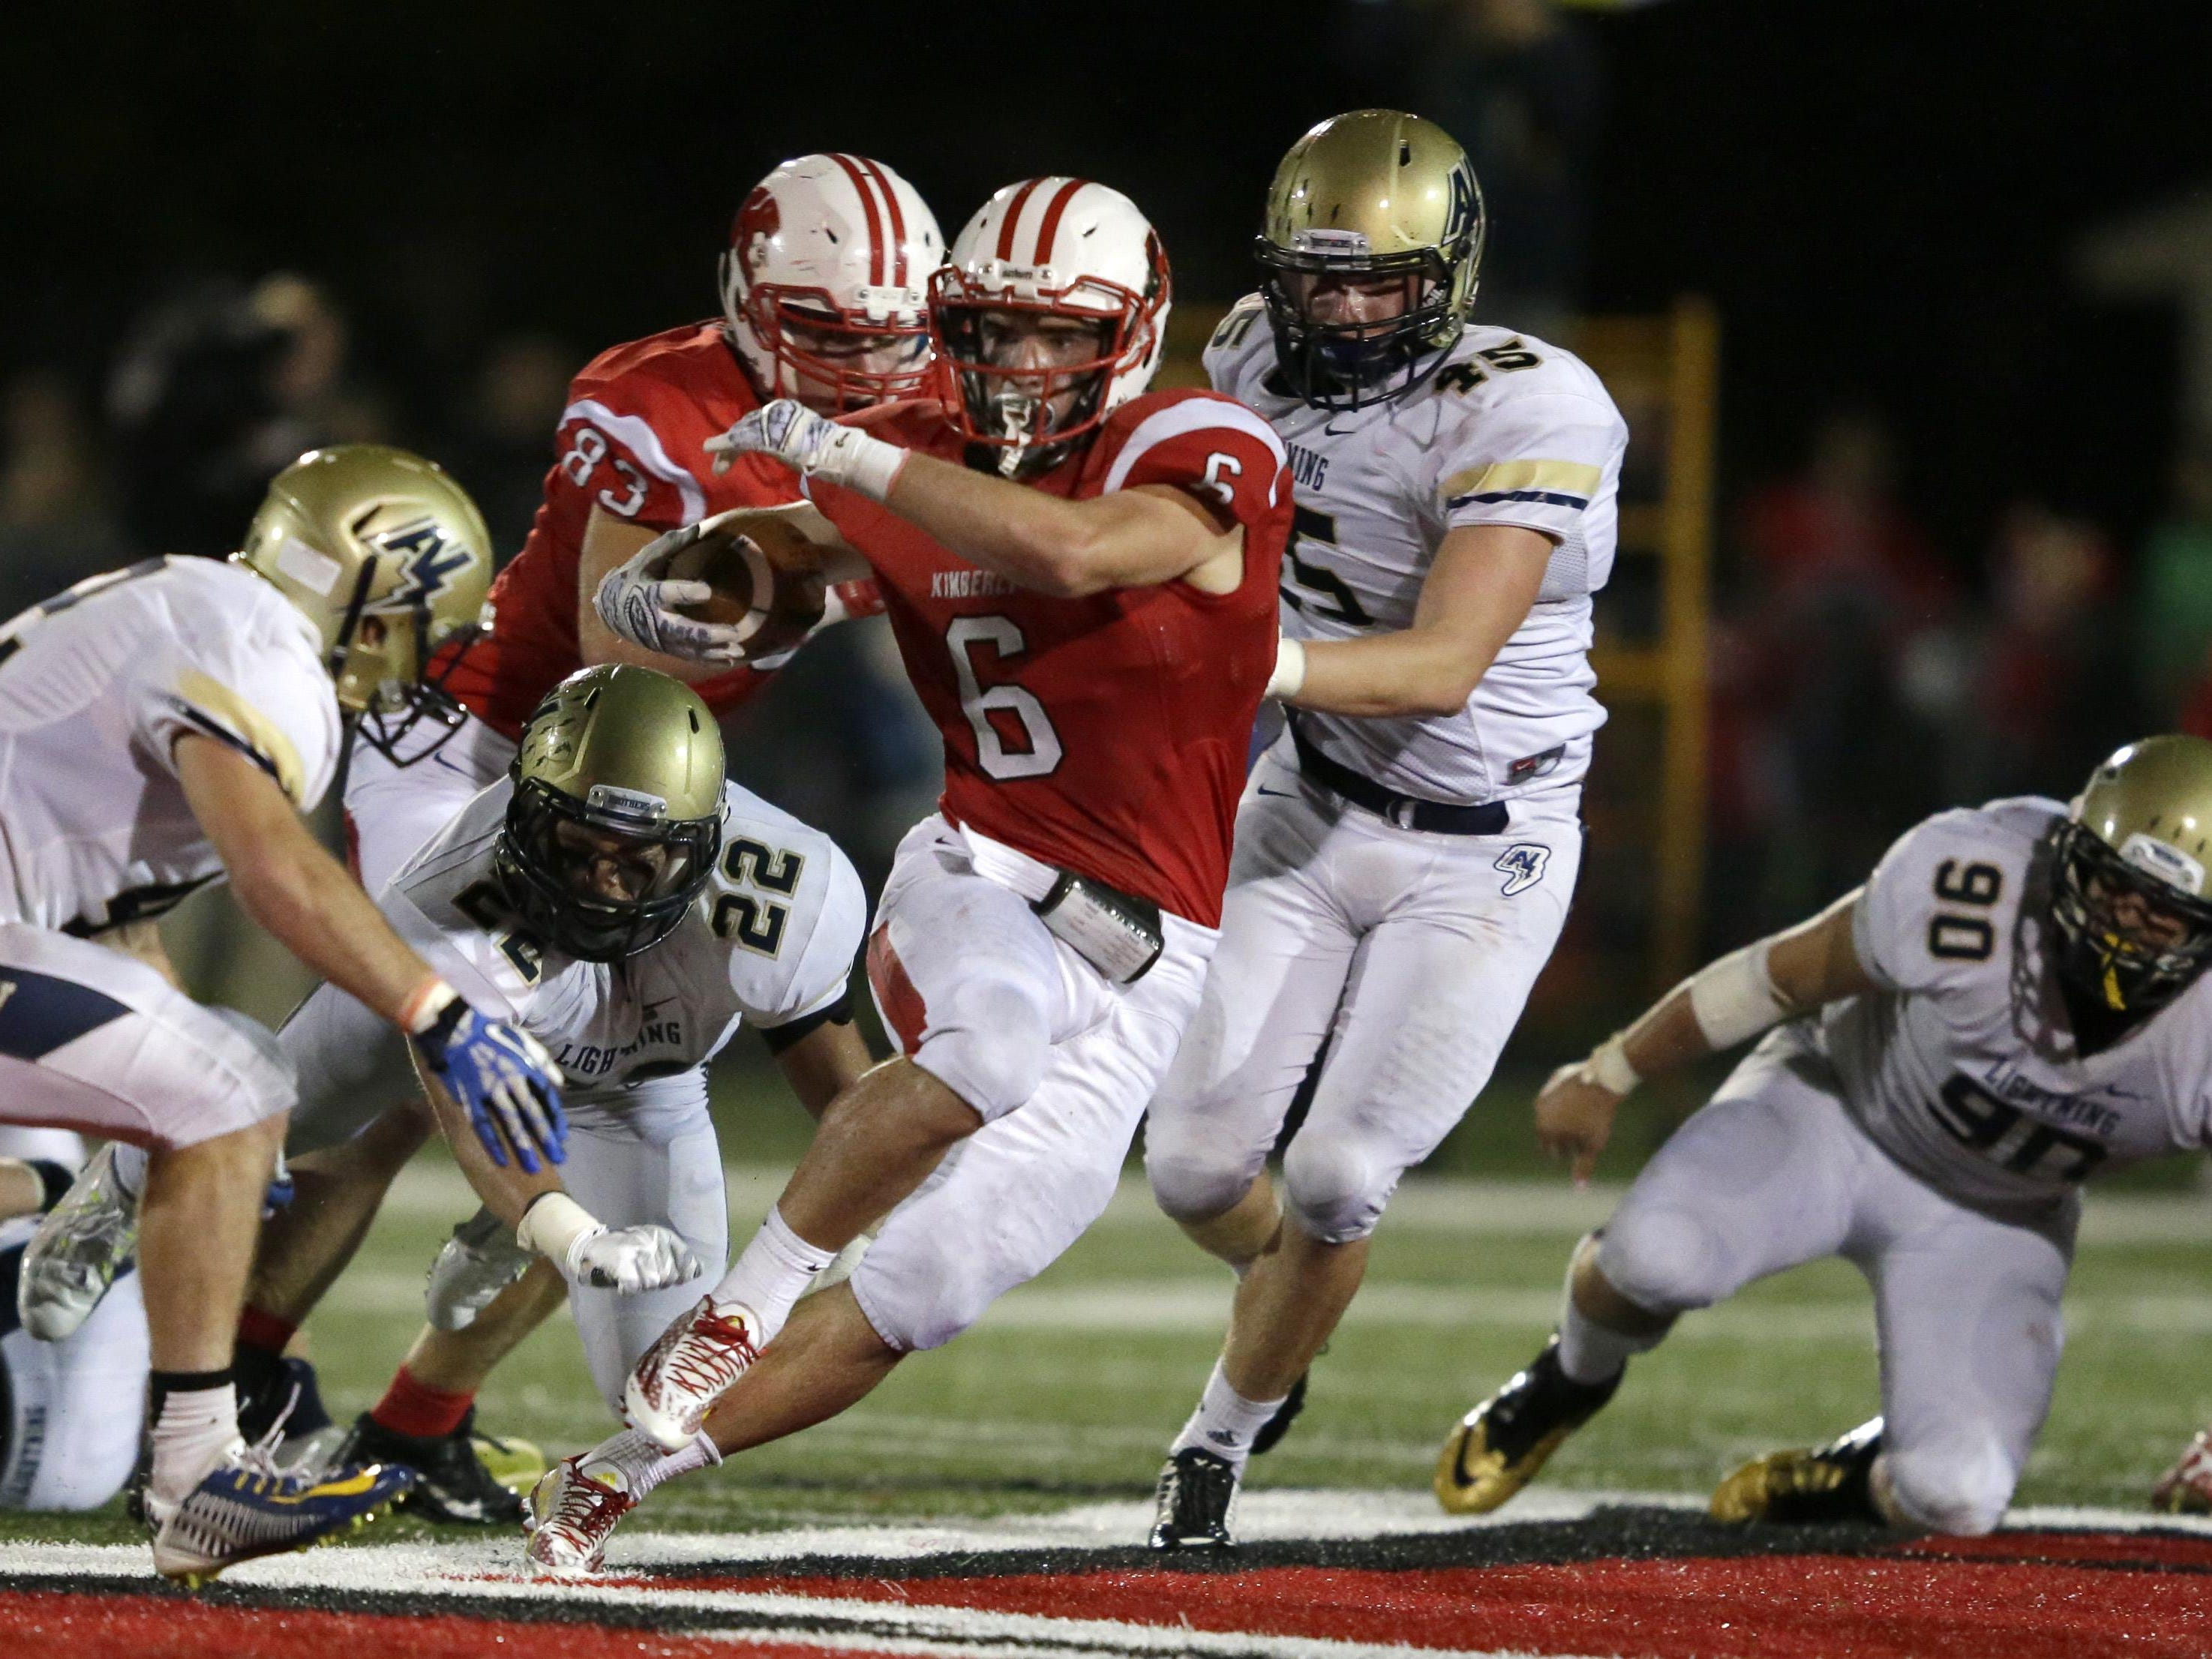 Kimberly High School's Blair Mulholland runs against Appleton North High School during a football game Friday in Kimberly.